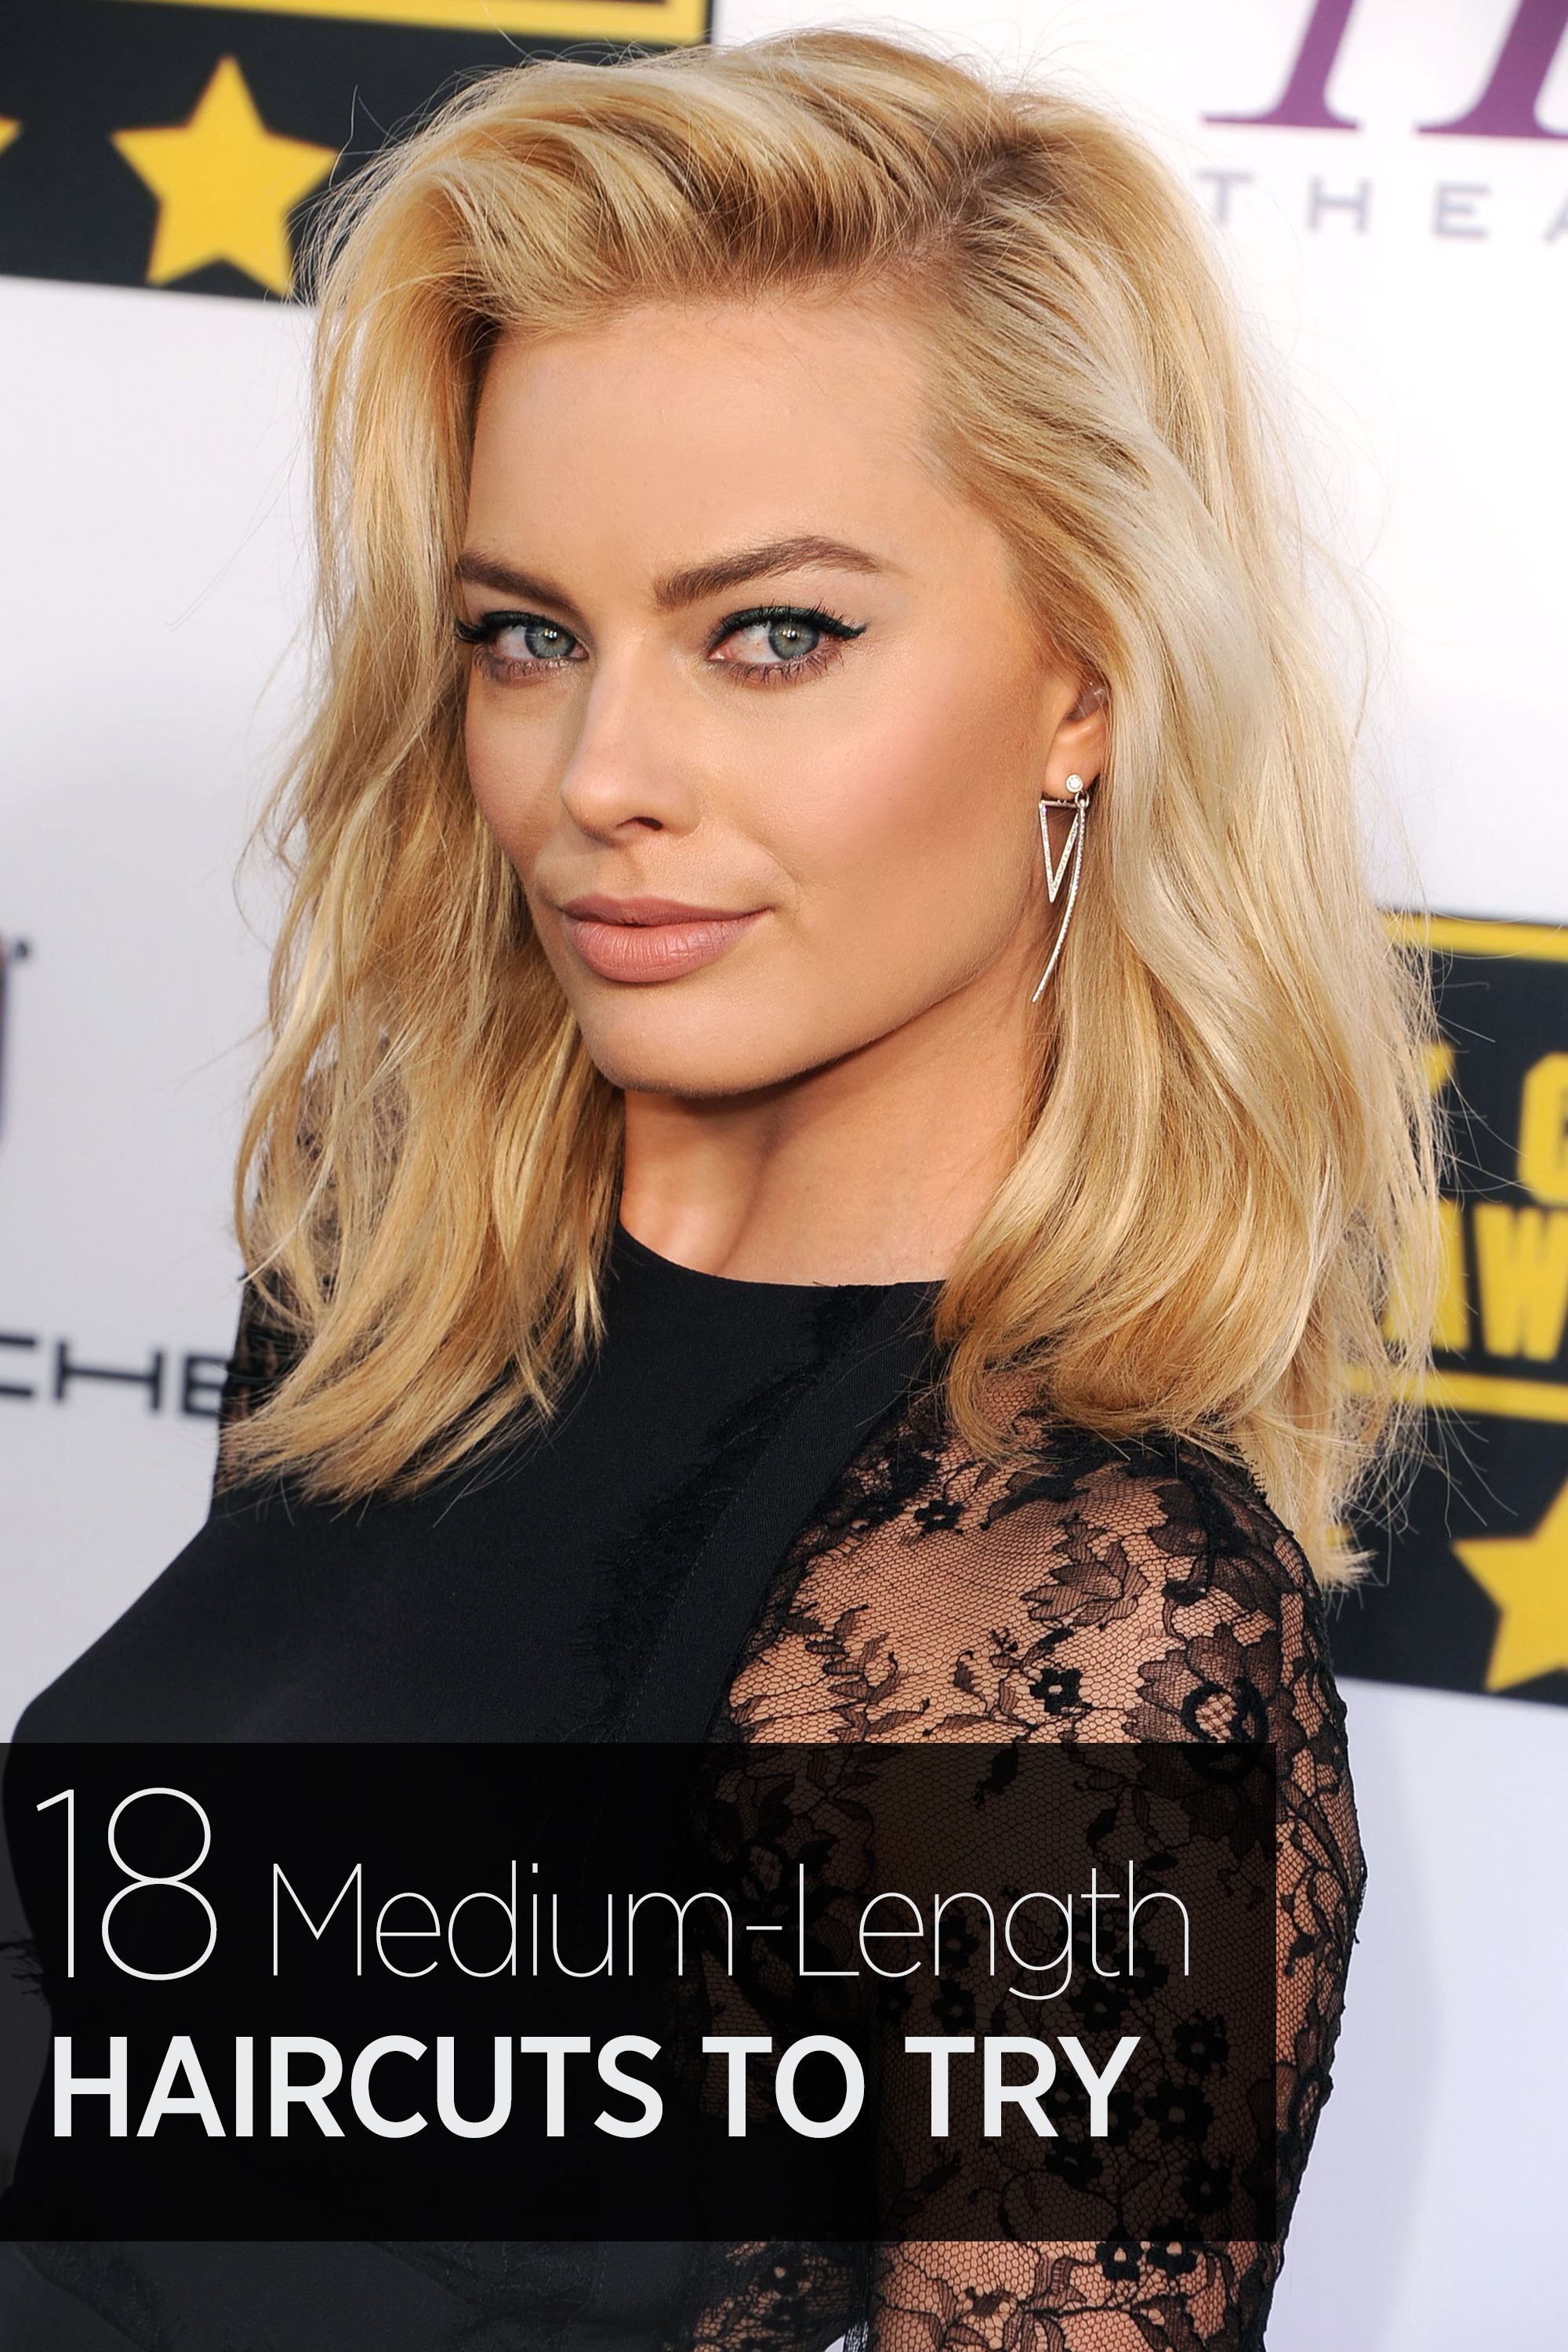 Wondrous 33 Best Medium Hairstyles Celebrities With Shoulder Length Haircuts Short Hairstyles For Black Women Fulllsitofus